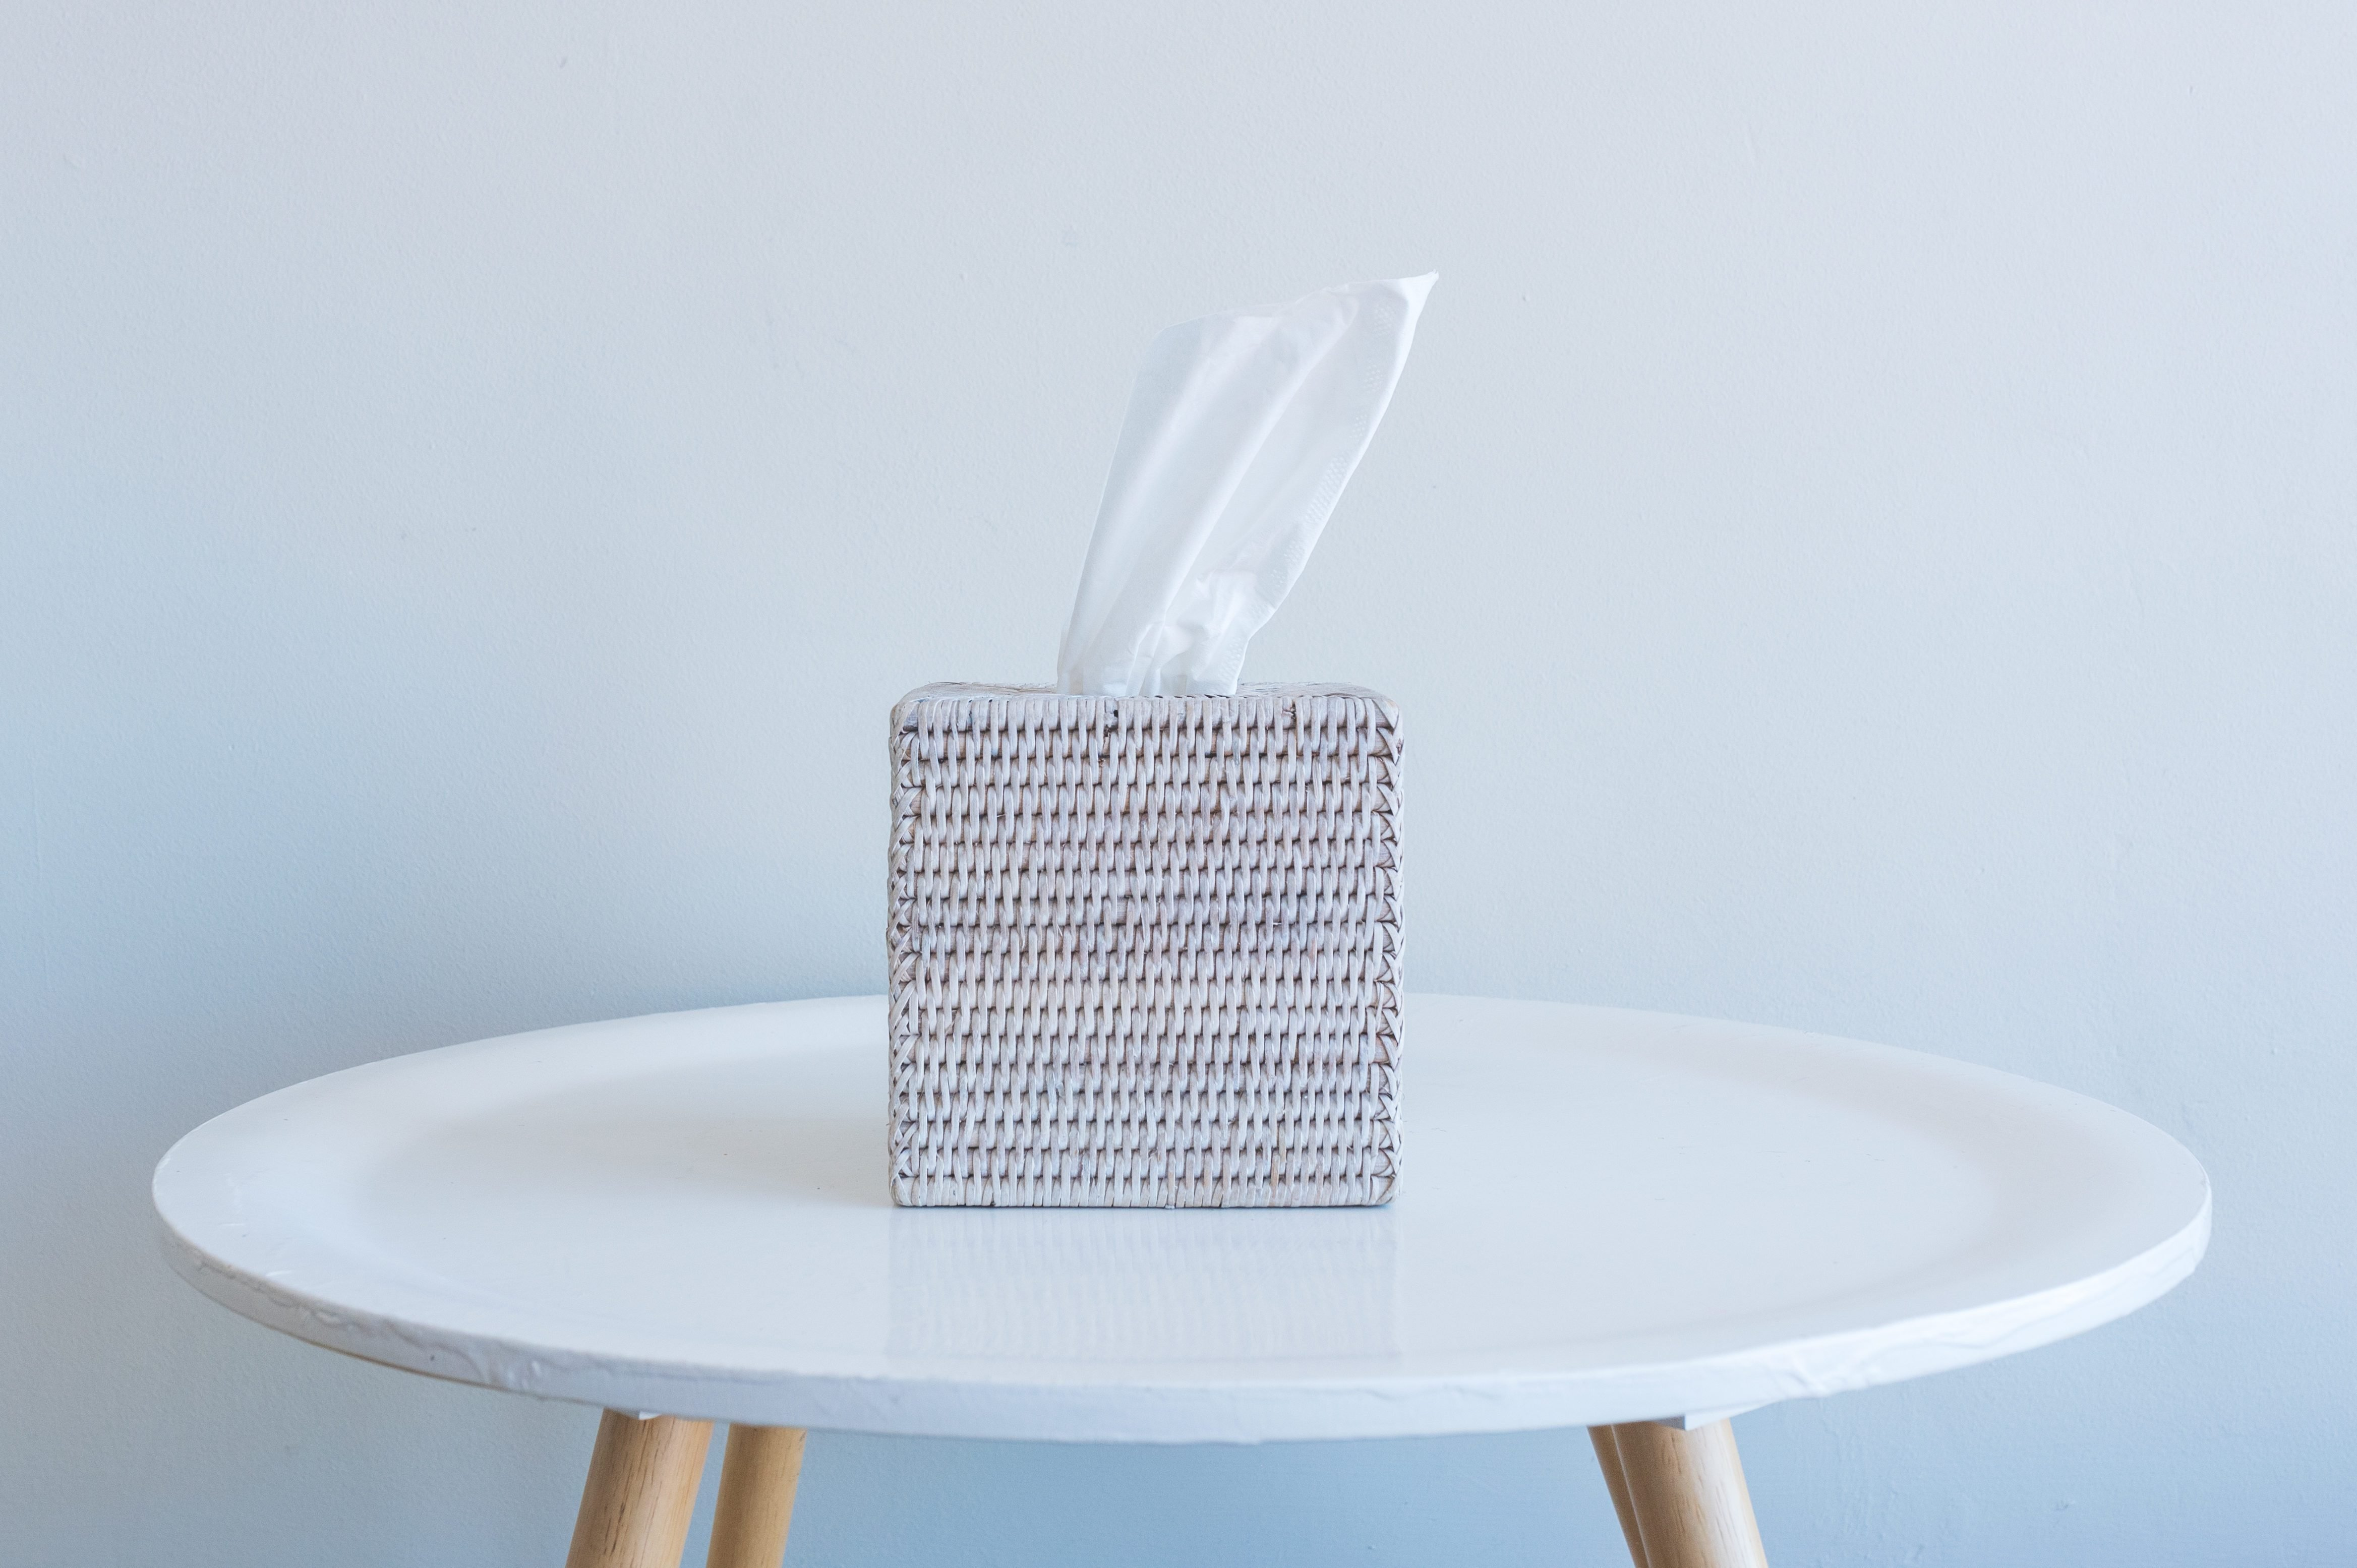 Tissue box on small white table against wall